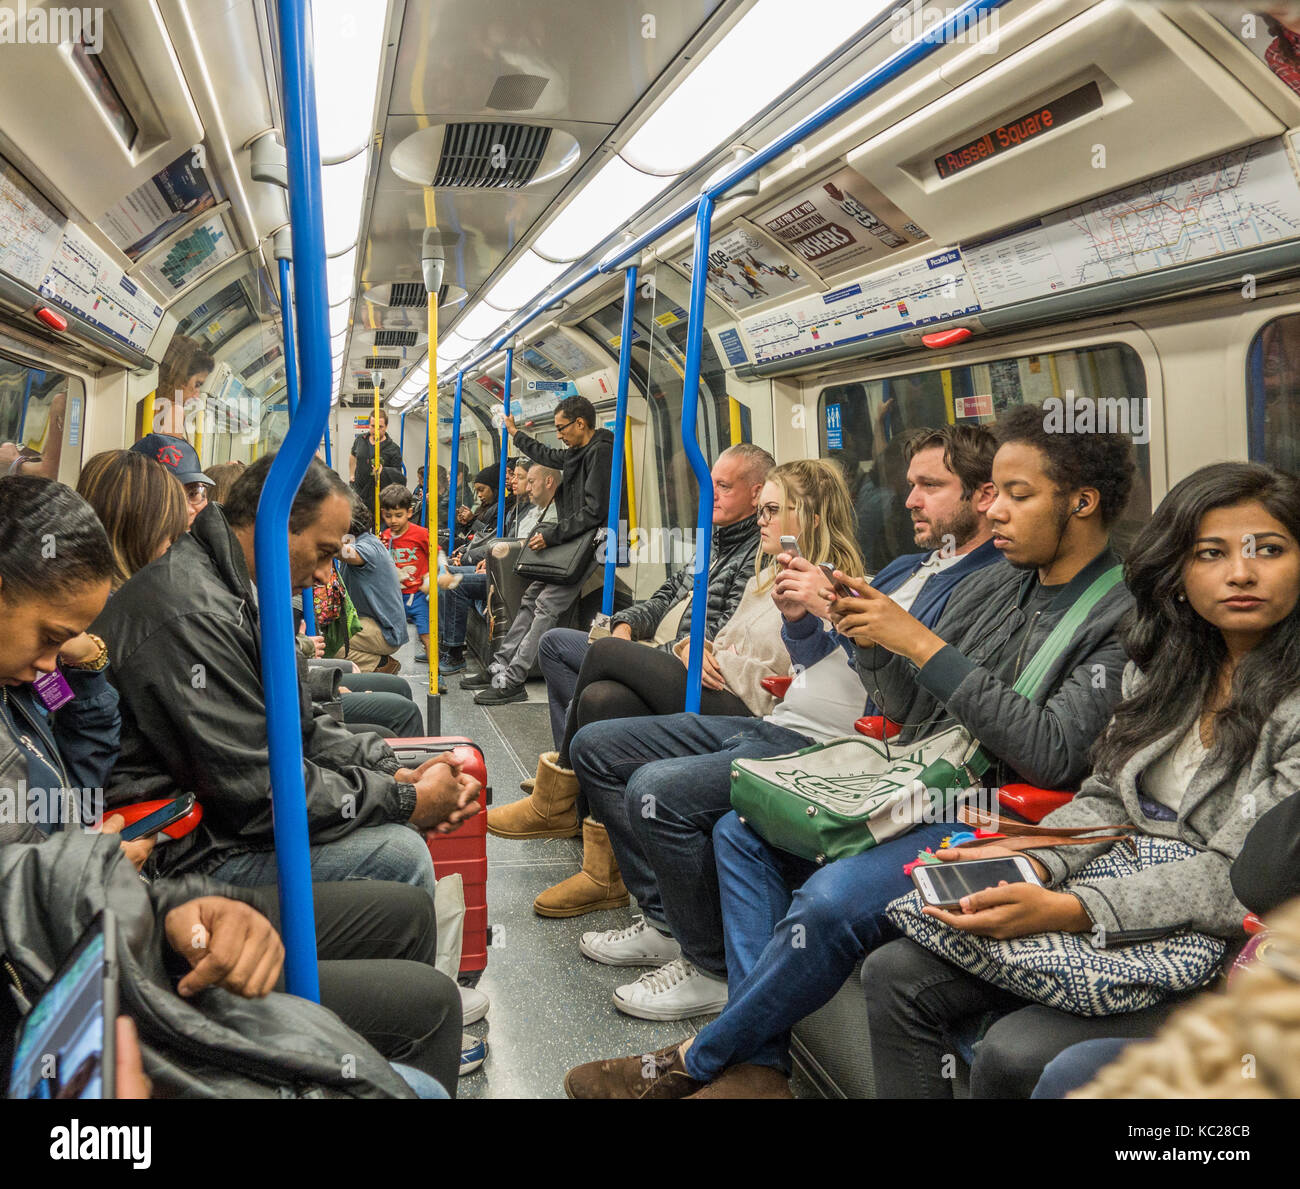 London Underground tube train - passengers / commuters sitting inside a busy Piccadilly Line carriage, during the - Stock Image